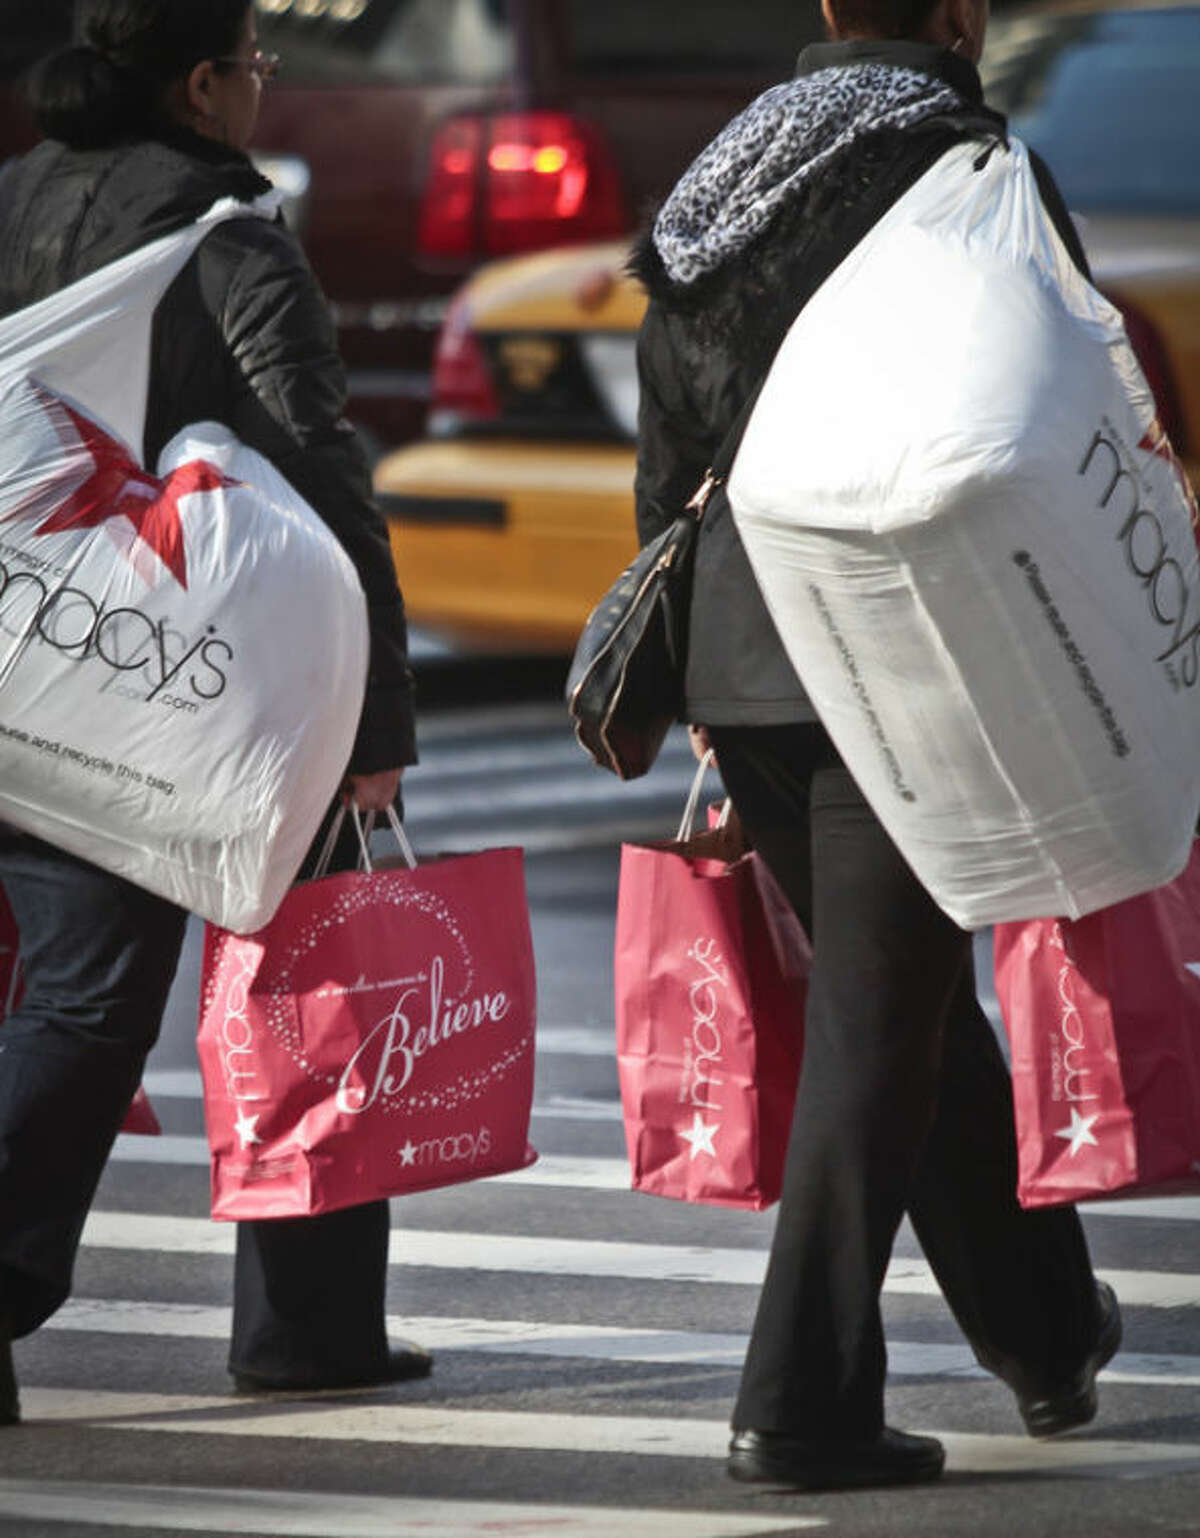 Shoppers carry Macy's bags while crossing an intersection outside Macy's on Saturday, Nov. 23, 2013, in New York. (AP Photo/Bebeto Matthews)